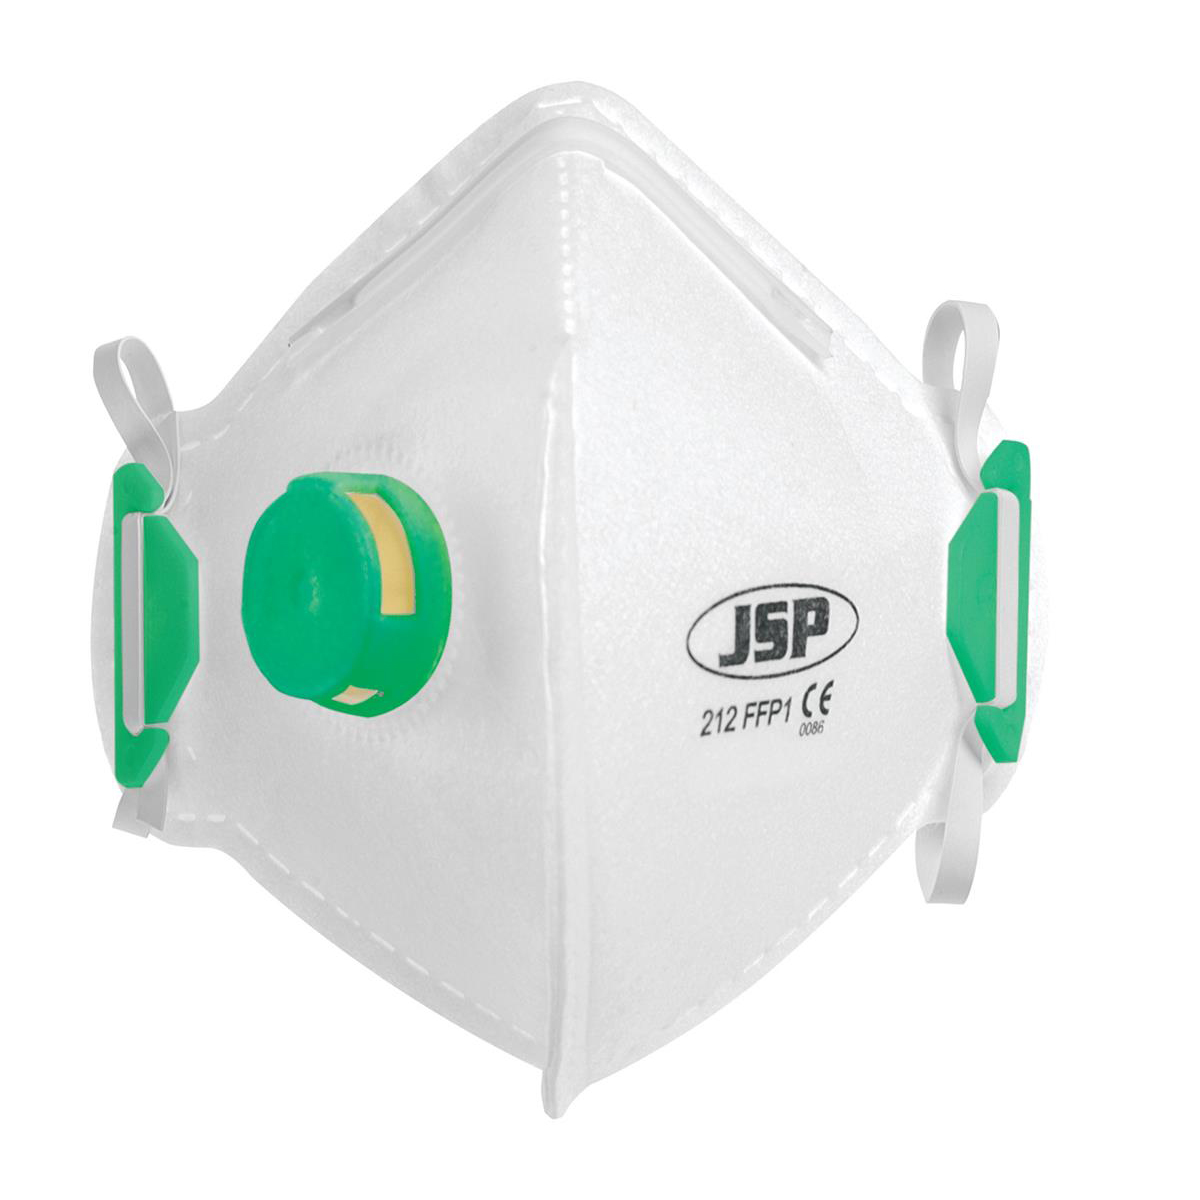 JSP Disposable Mask Valved Fold-flat FFP1 Class 1 EN149:2001 & A1:2009 Ref BEB110-101-000 [pack 10]